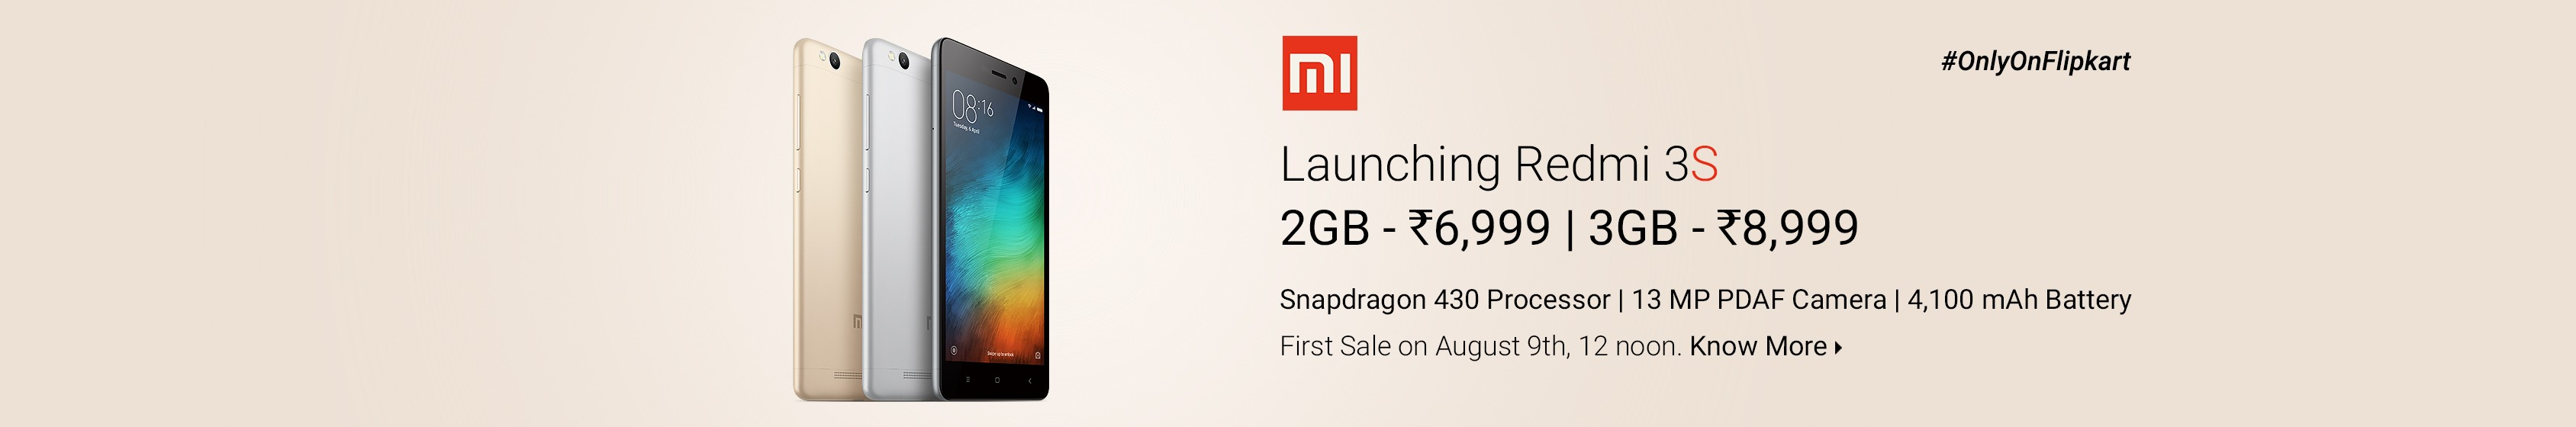 Redmi 3S launch on Flipkart key features specifications reviews coupons cashback offers promo codes discounts